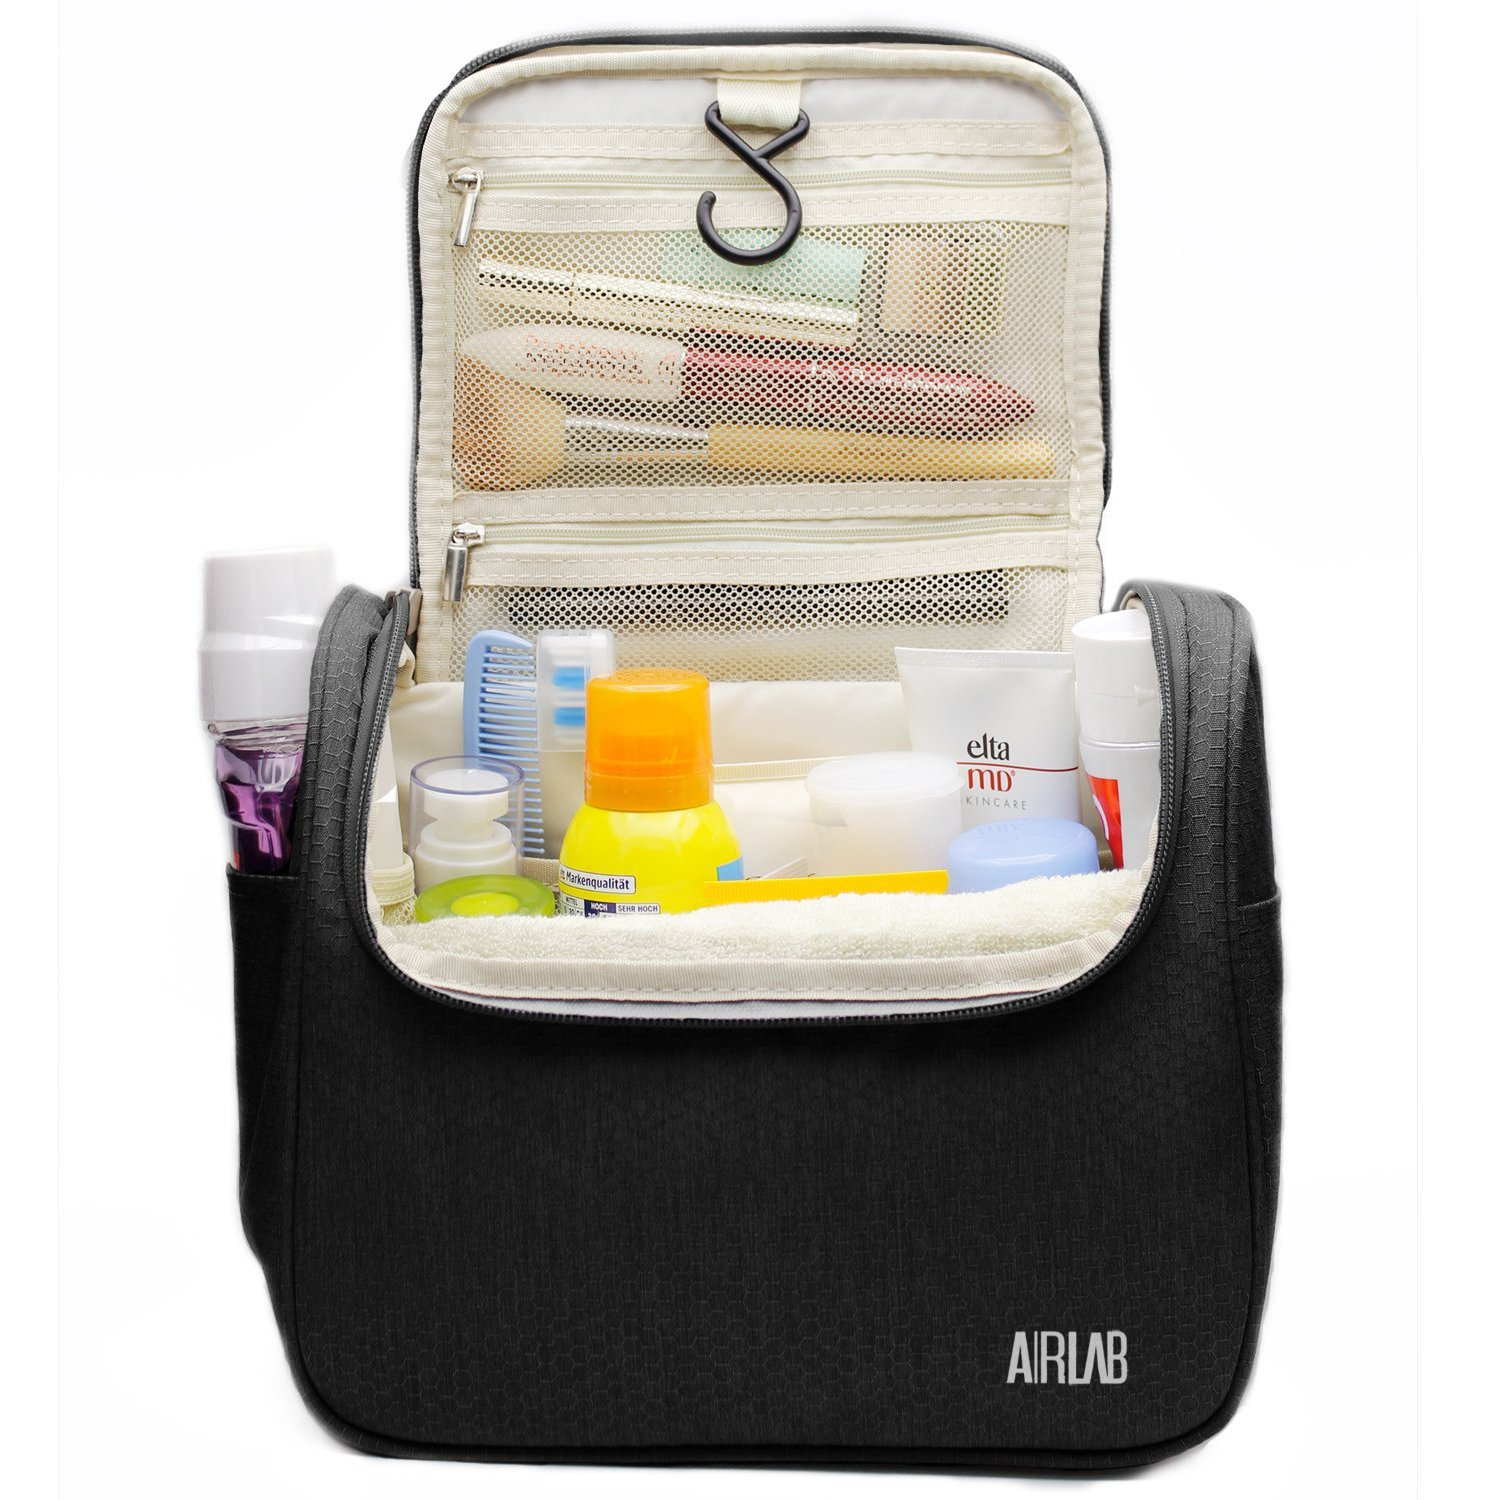 861ffe1ce782 Hanging Toiletry Bag, Airlab Large Cosmetic Bag with Handle and Hook,  Travel Toiletry Organizer for Men and...